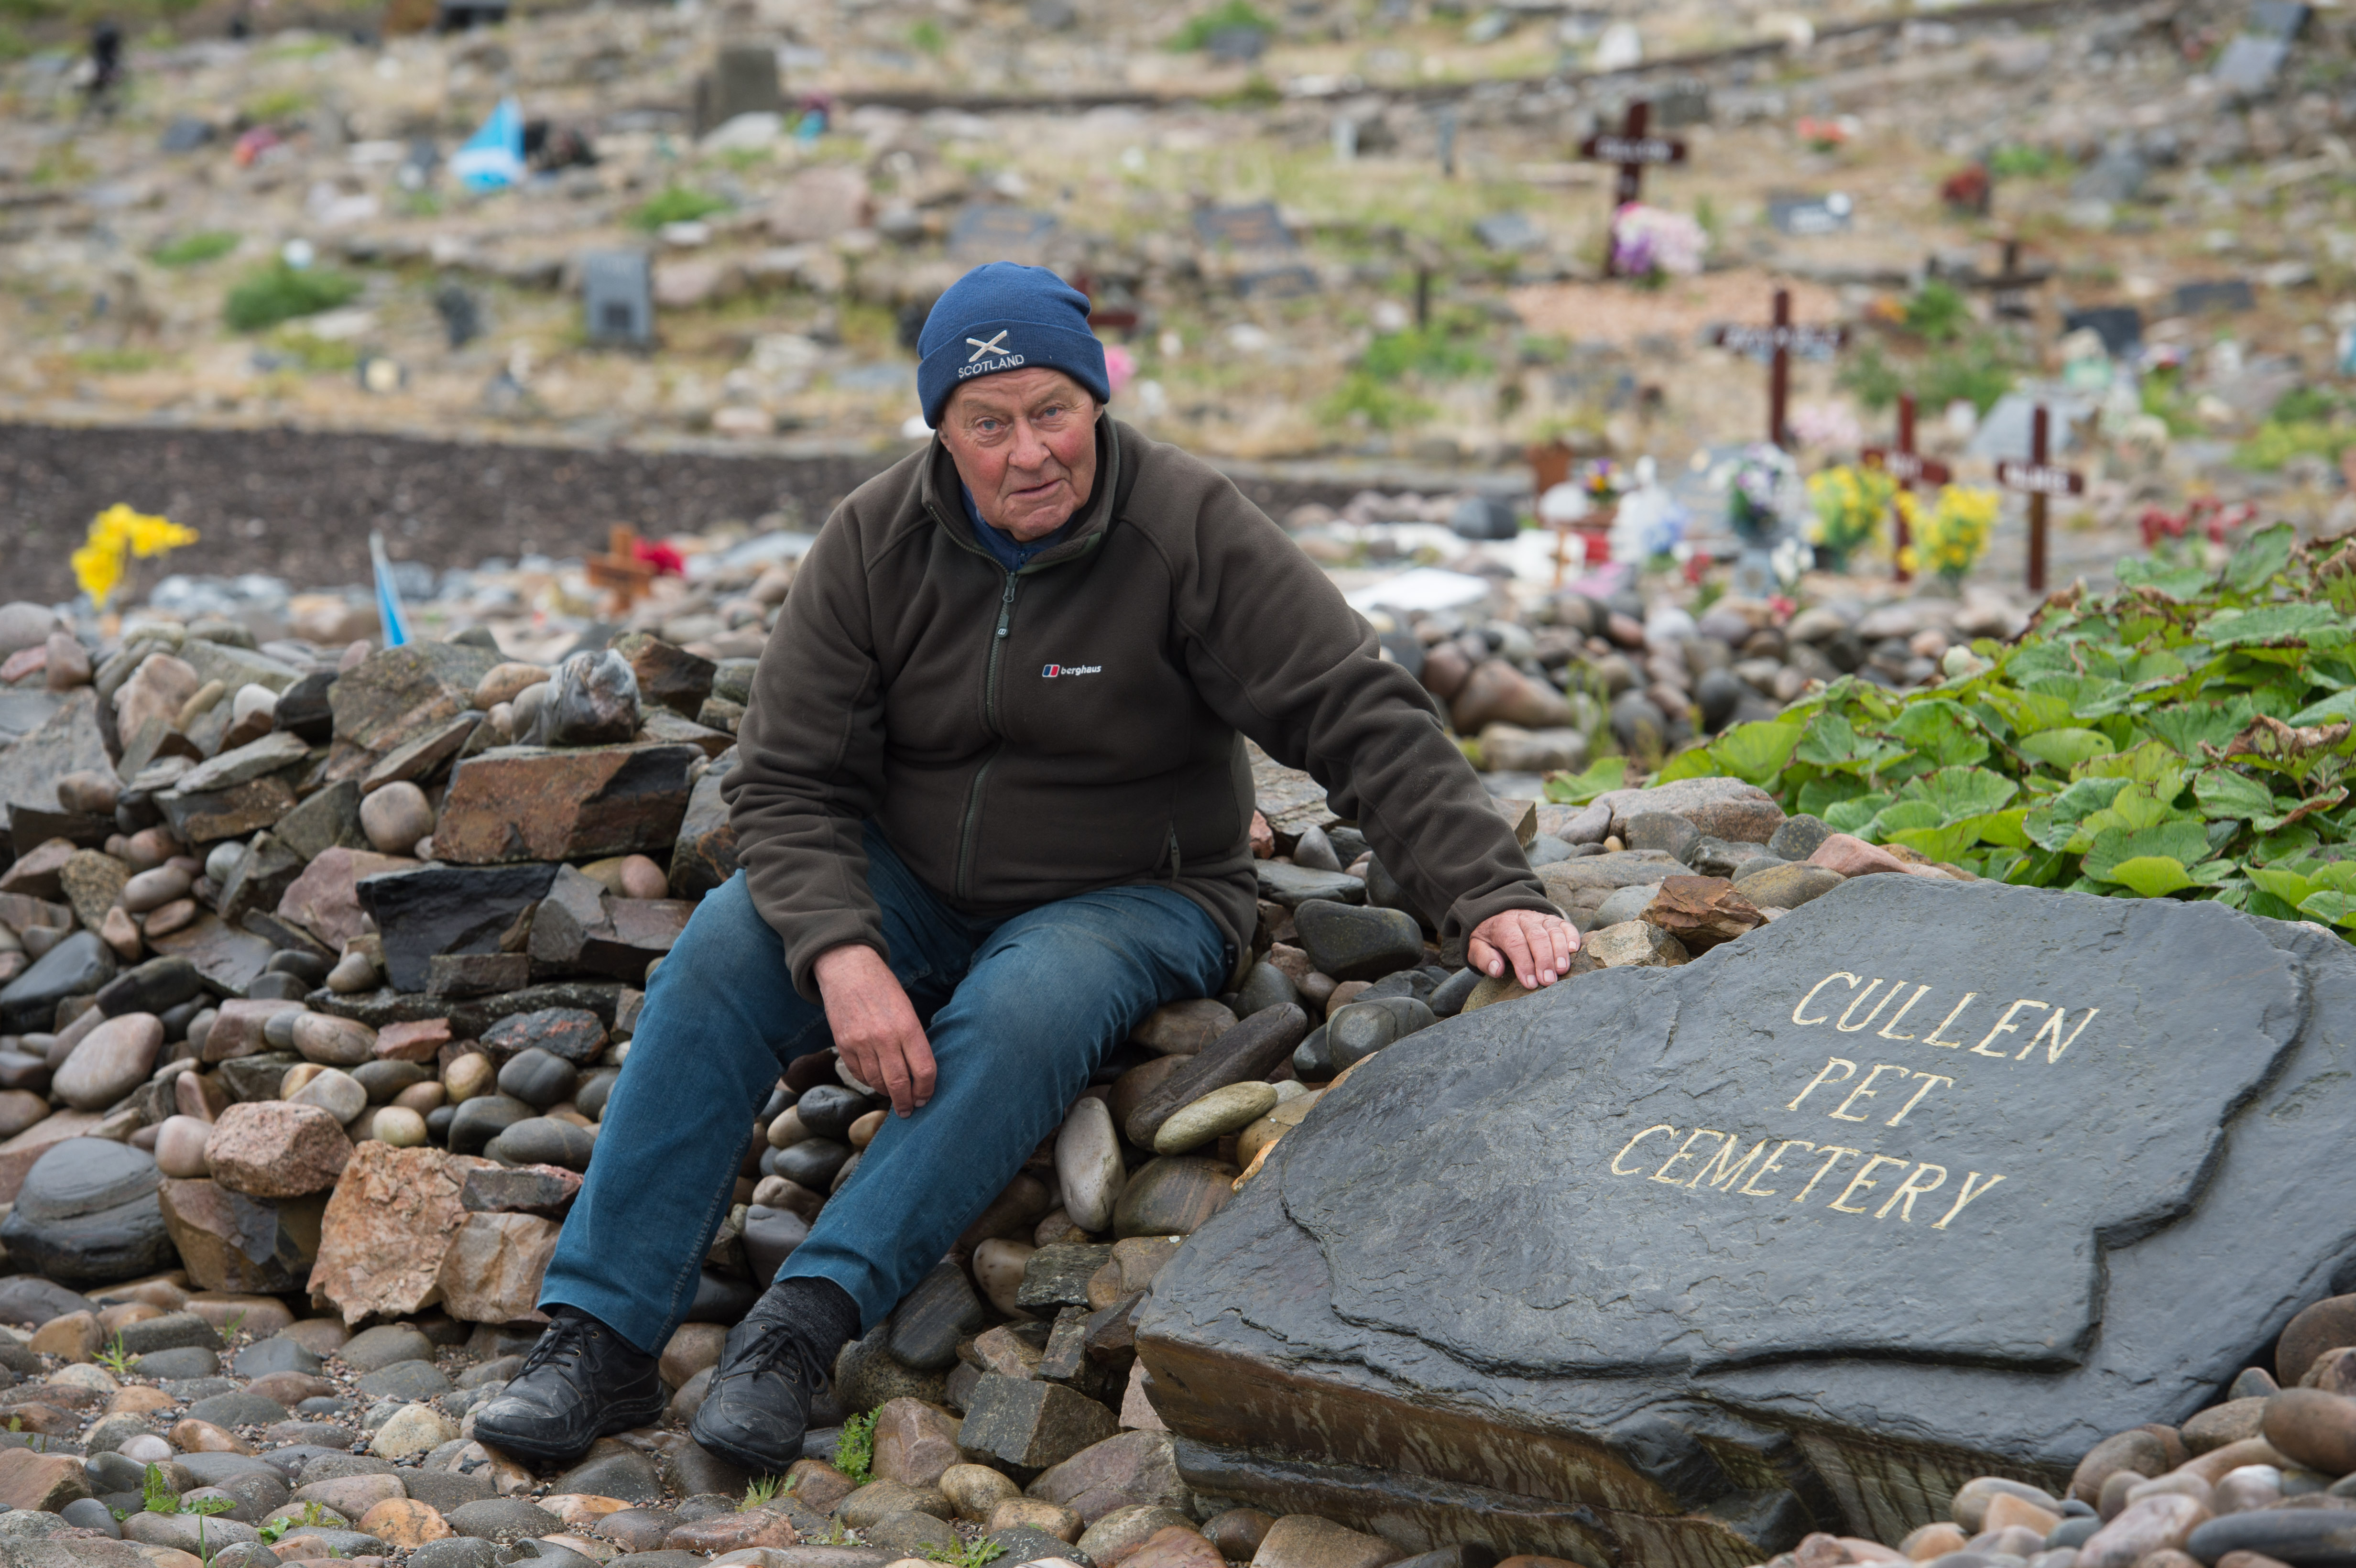 Stephen Findlay at the Pet Cemetery in Cullen. Picture by Jason Hedges